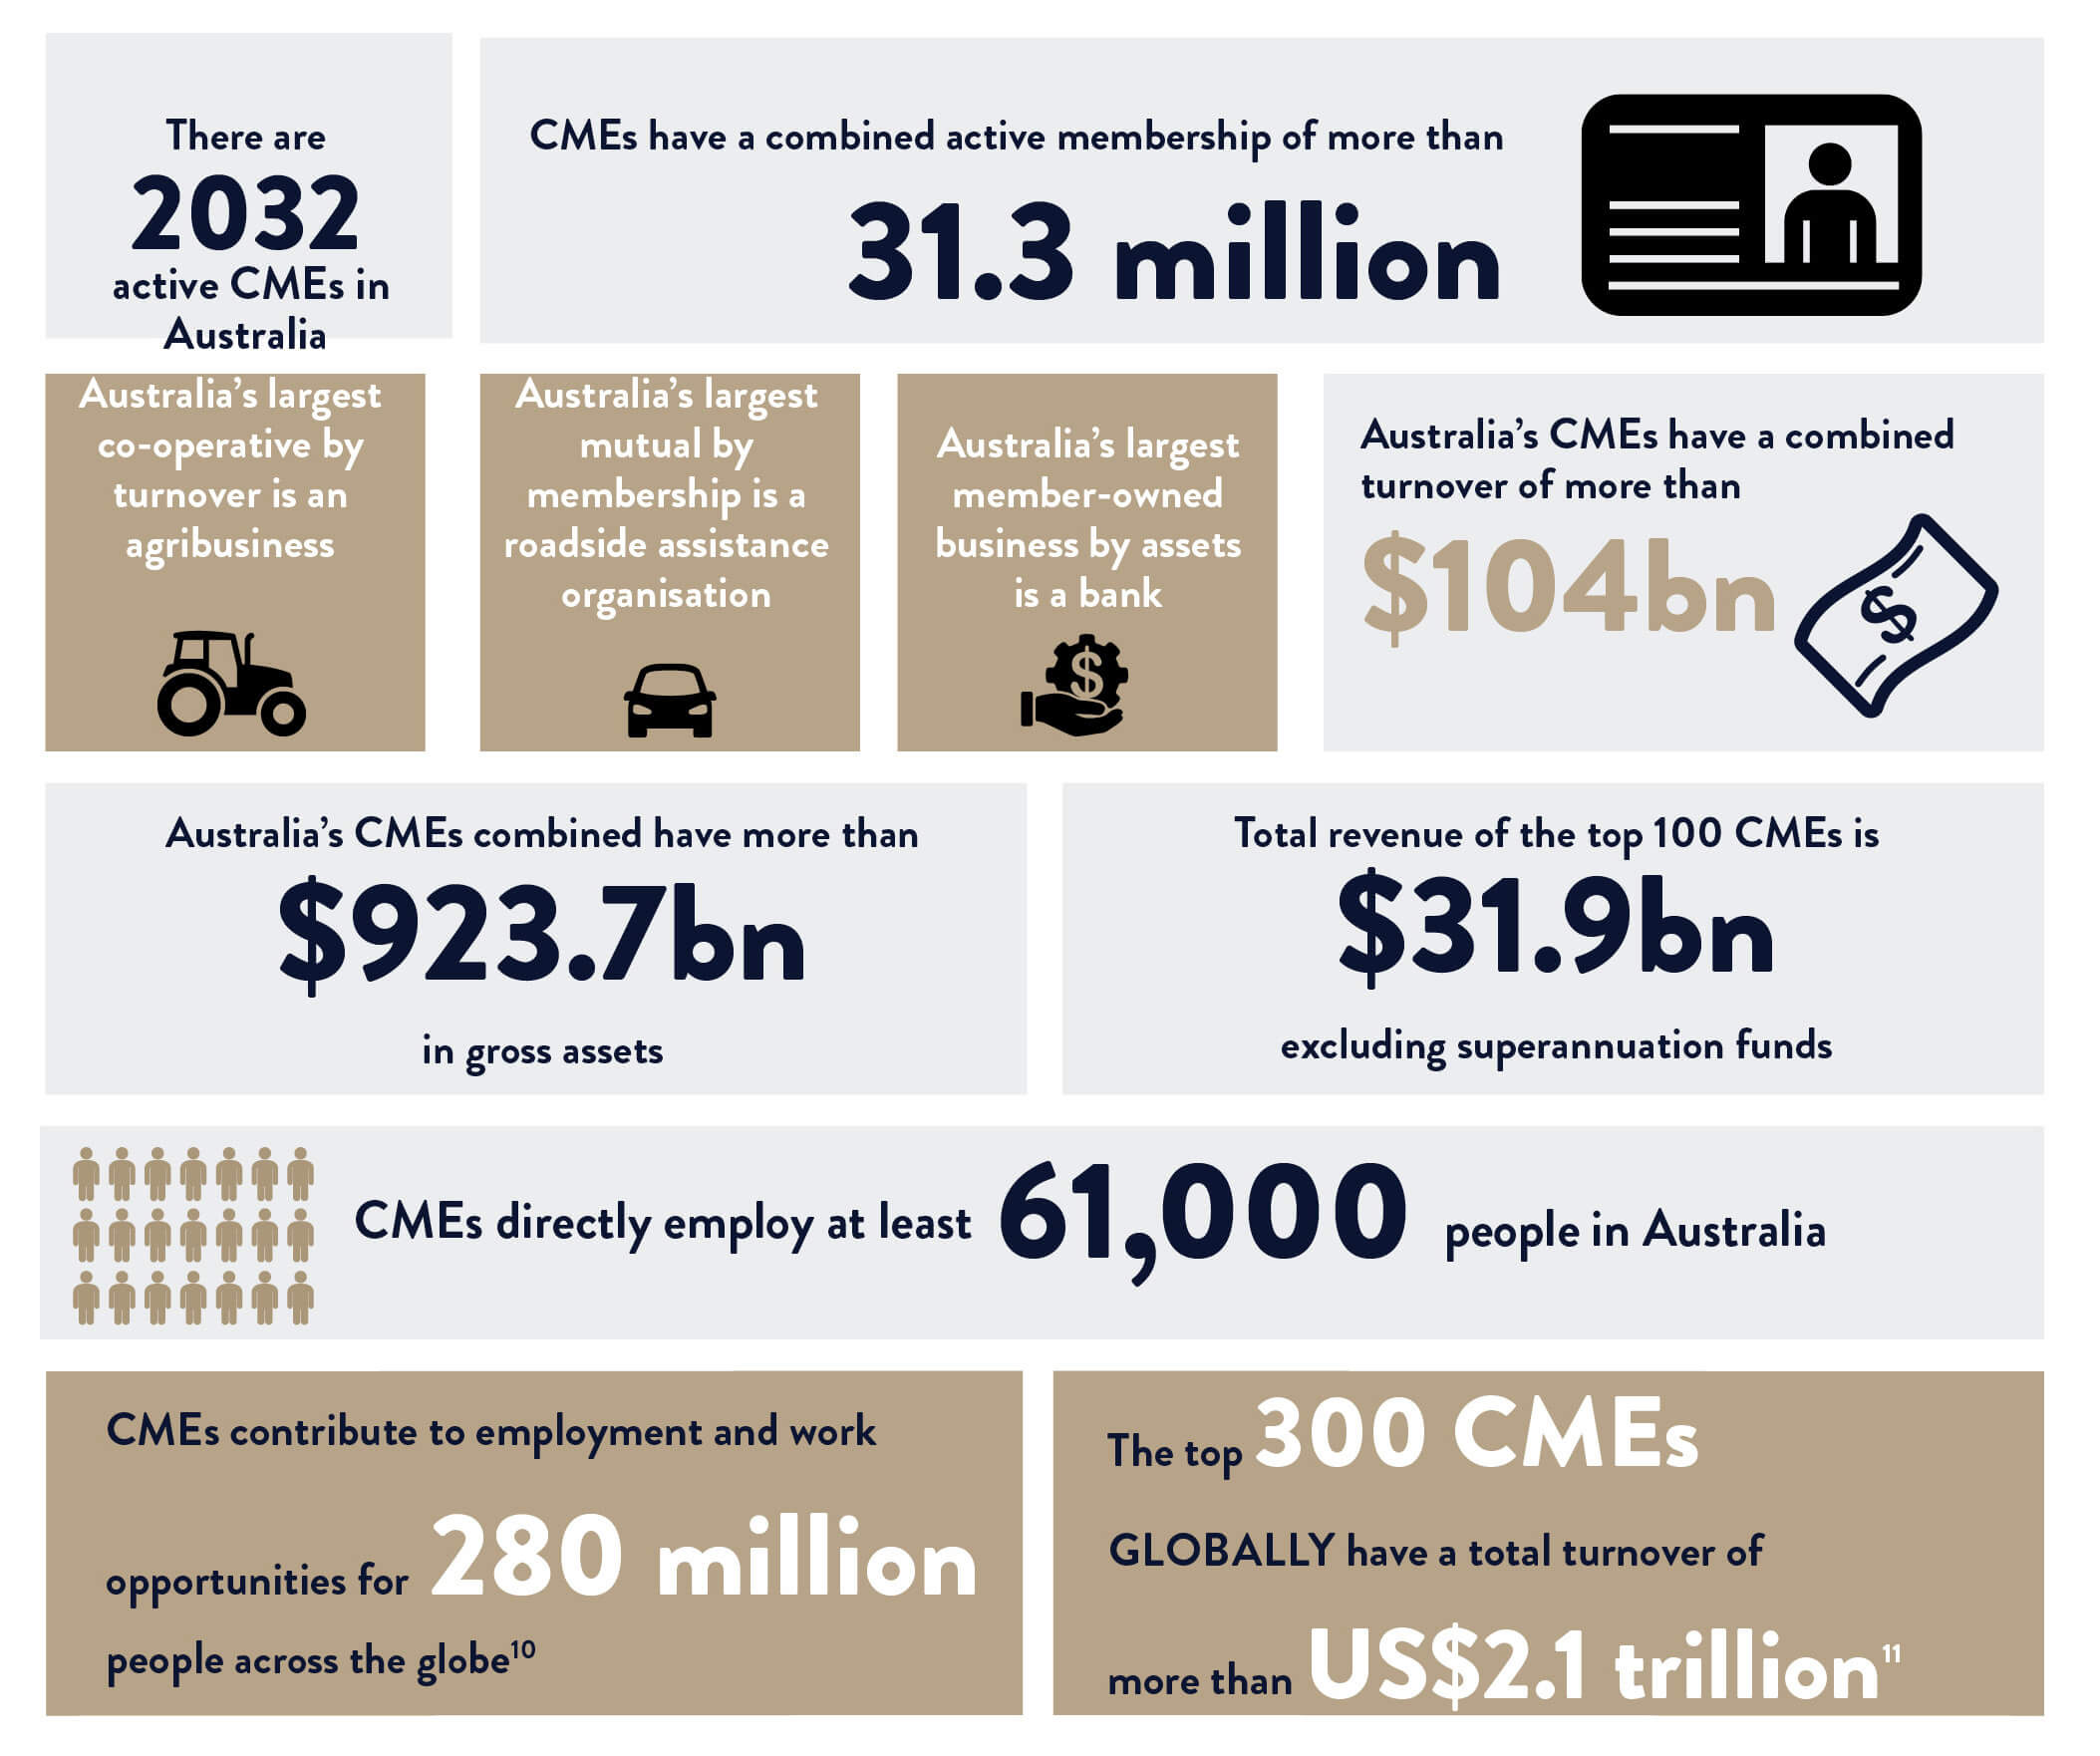 Infographic: The role of CMEs in Australia